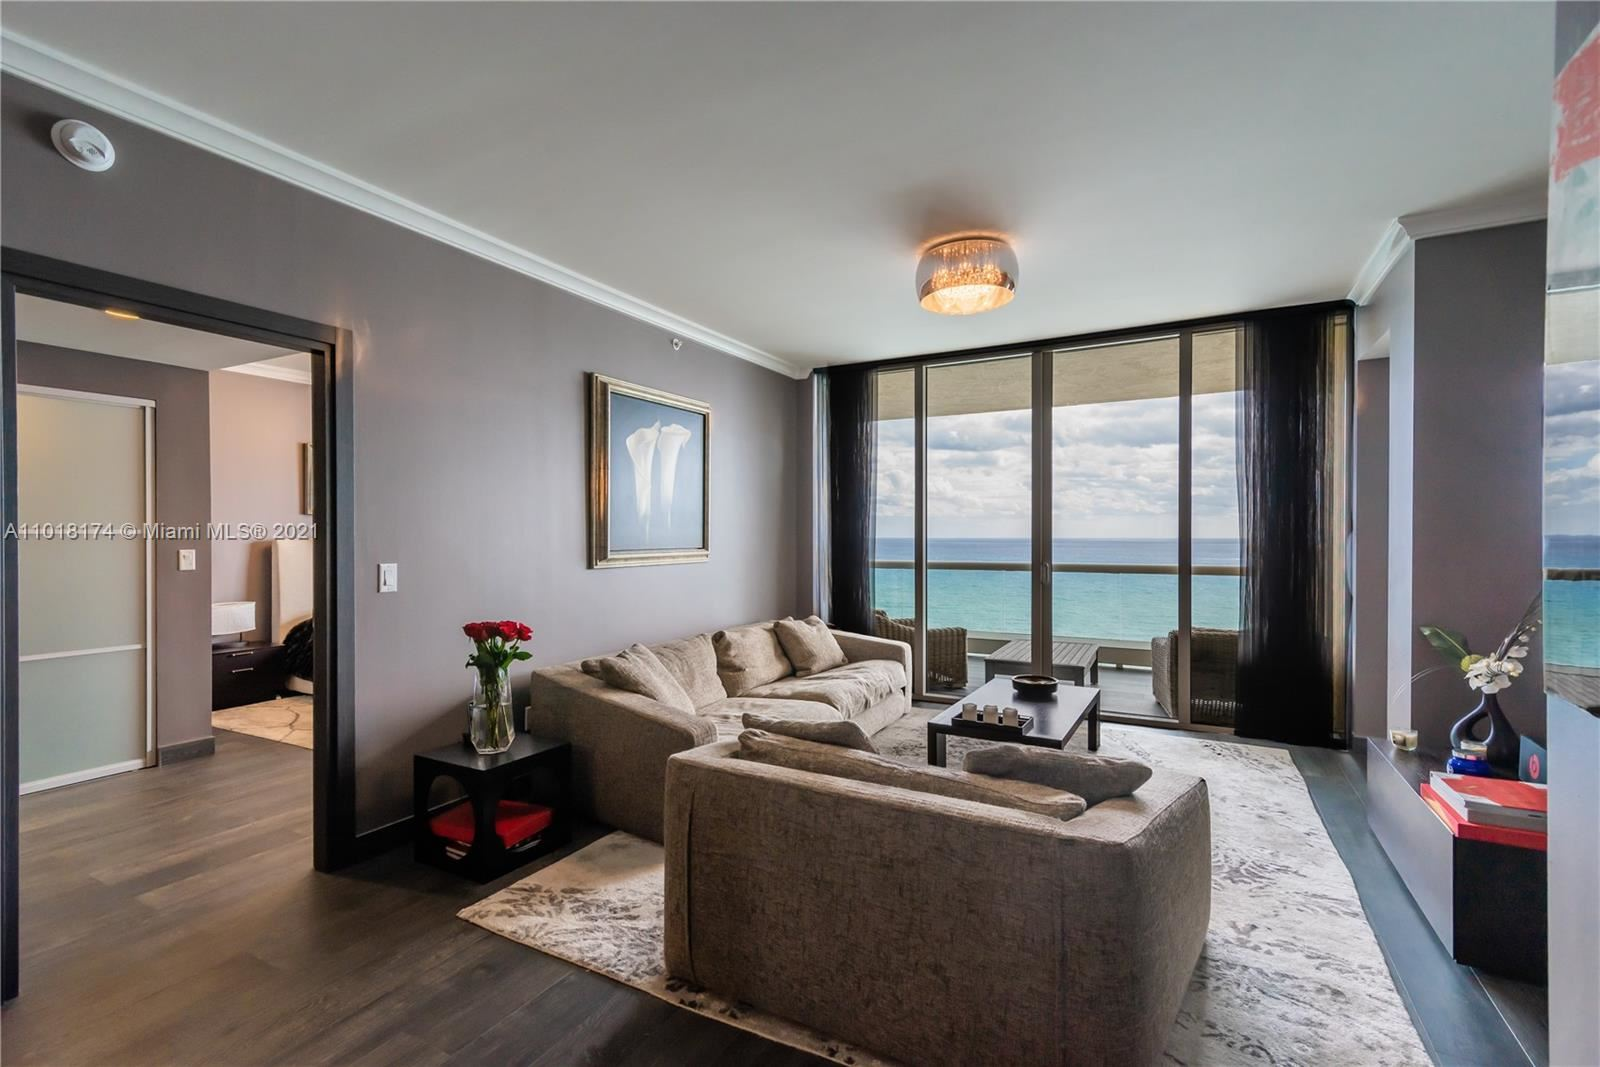 17875 Collins Ave #3005, Sunny Isles, FL 33160 - #: A11018174